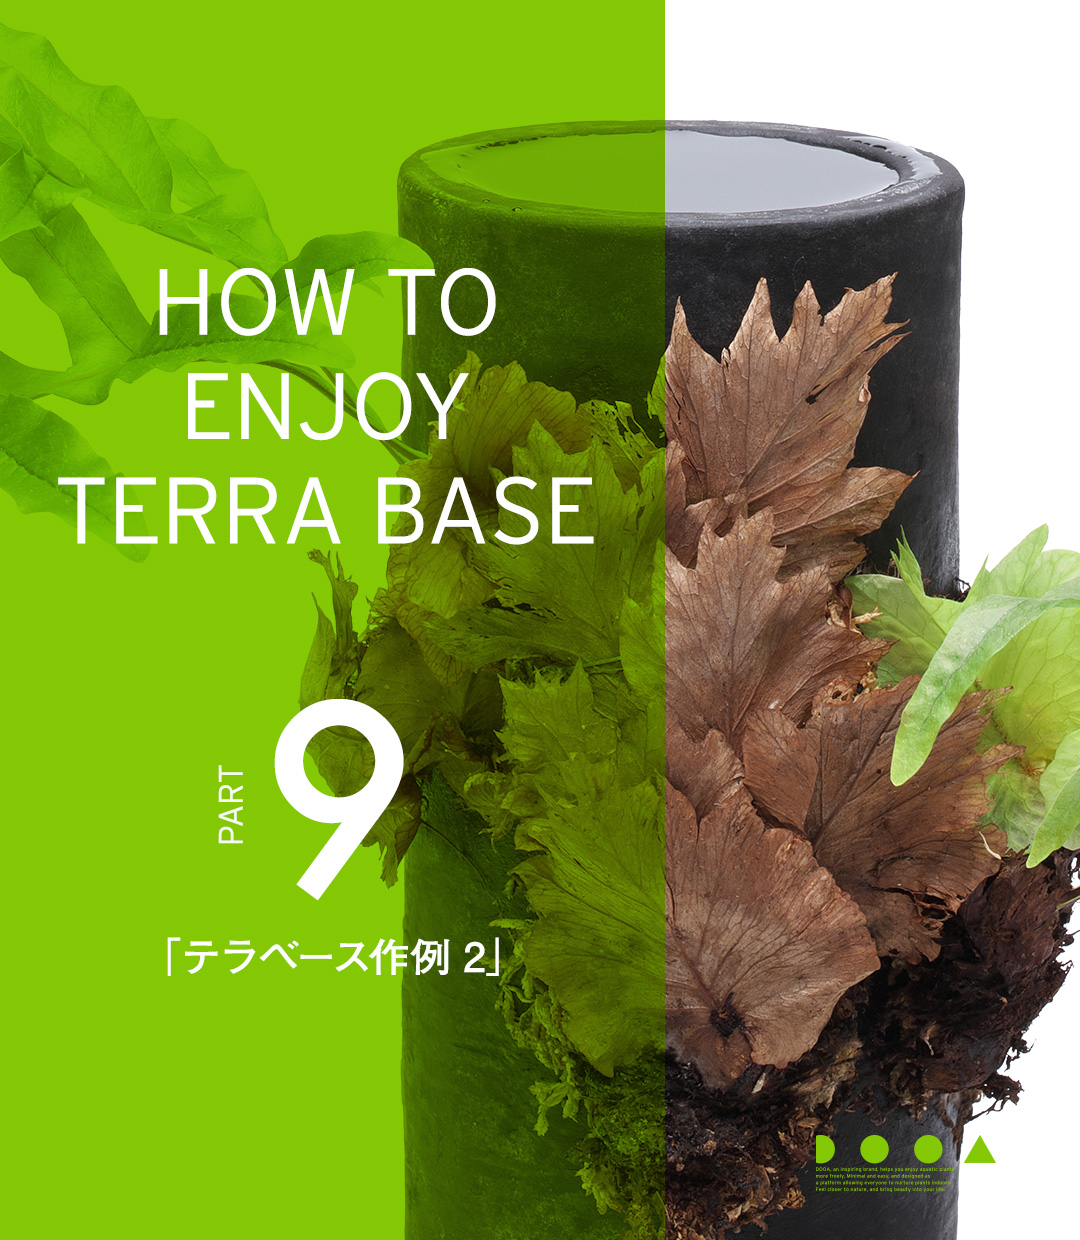 HOW TO ENJOY TERRA BASE PART9 「テラベース作例 2」